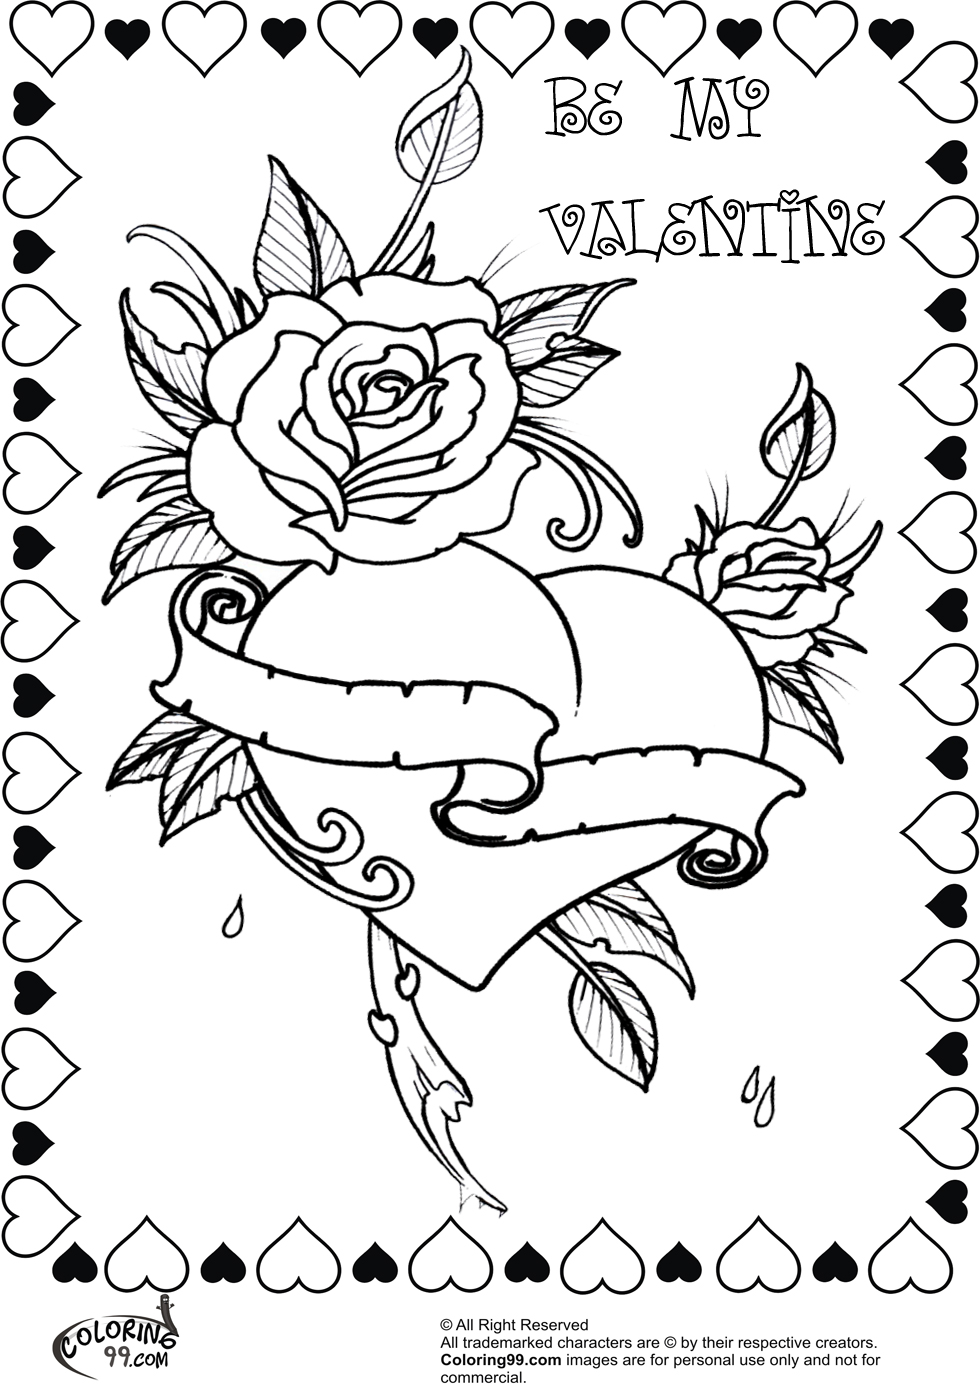 980x1400 Coloring Pages With Names On Them Rose Valentine Heart Minister